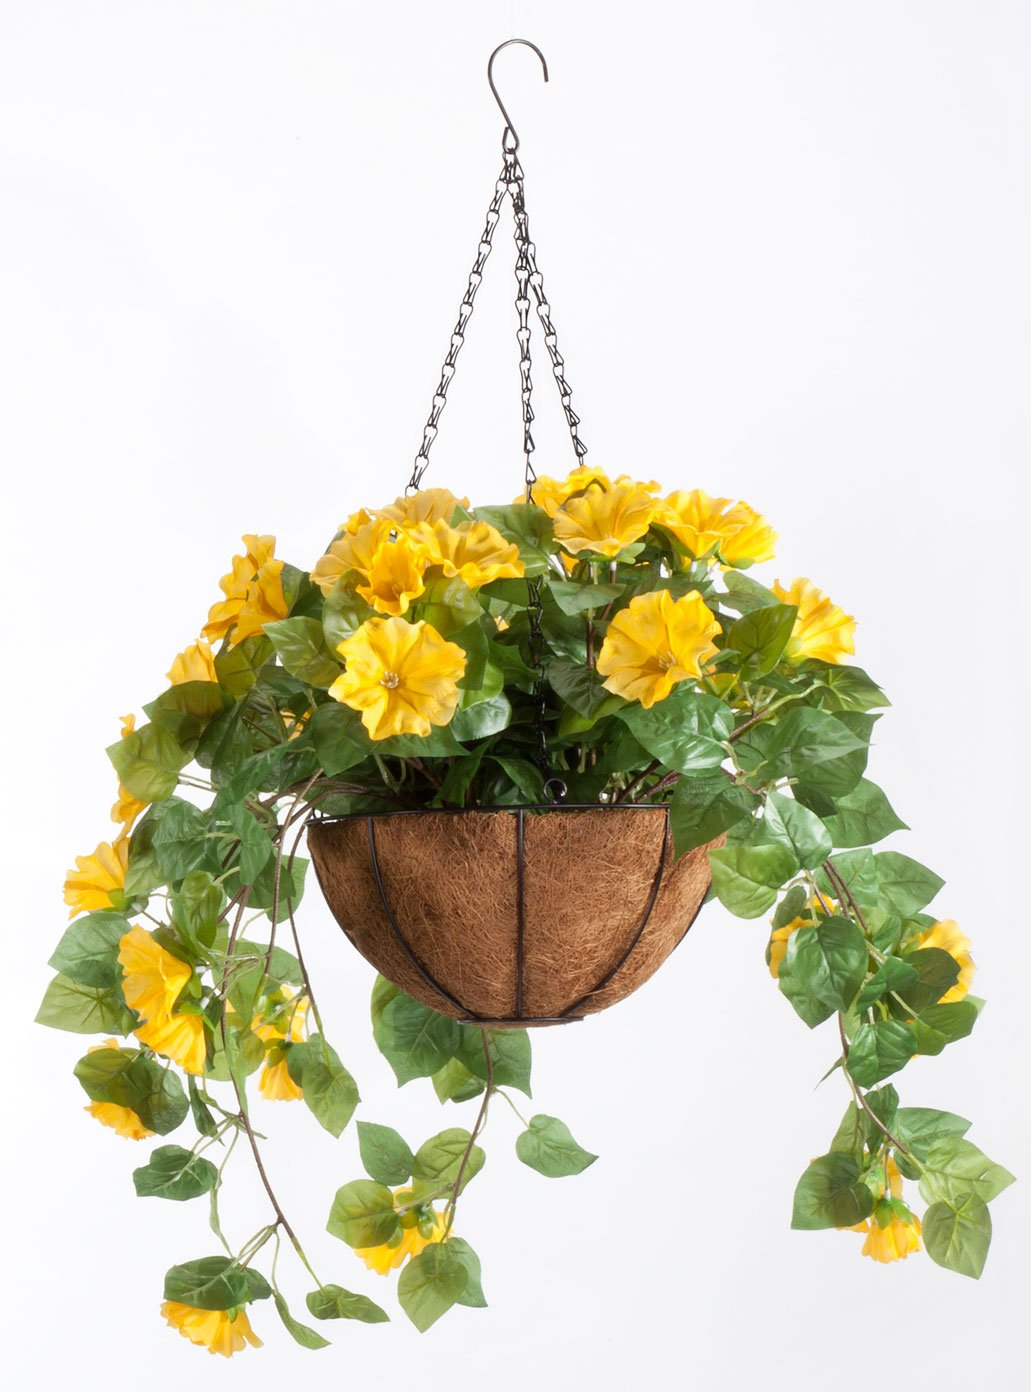 Fully Assembled Petunia Hanging Basket by Oakridge OutdoorTM by Miles Kimball